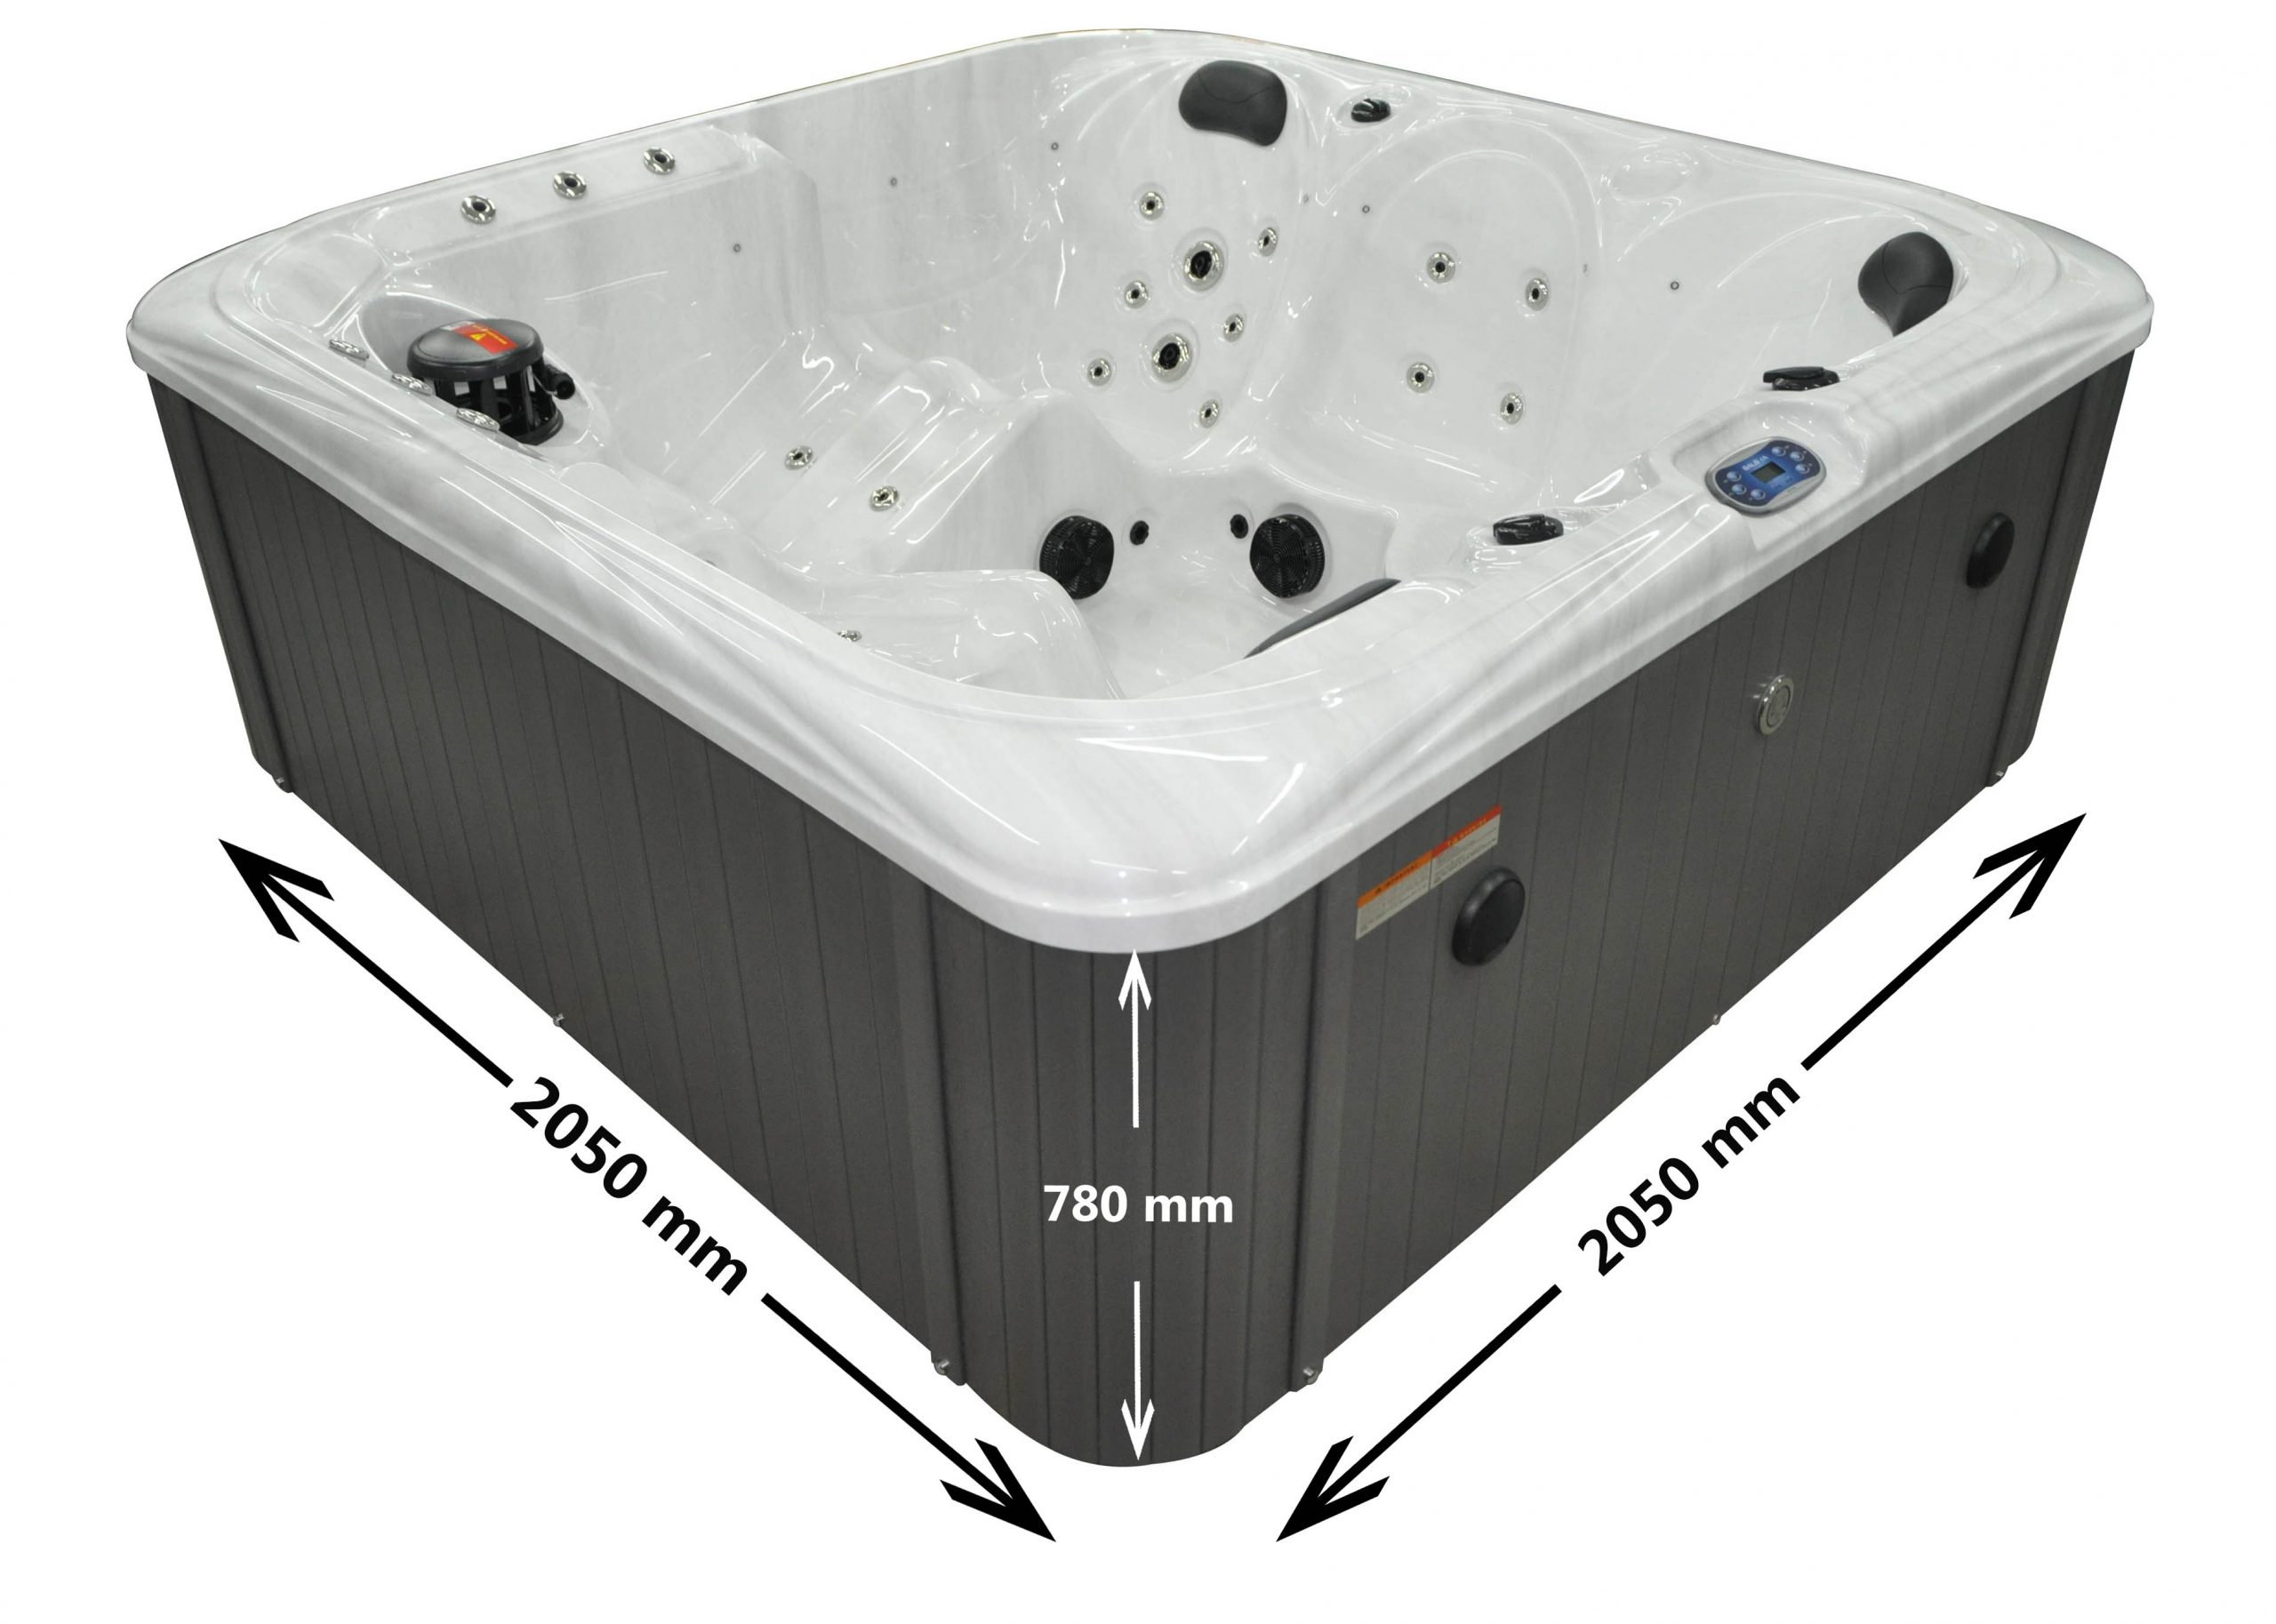 San Marcos 5 Person Hot Tub Dimensions